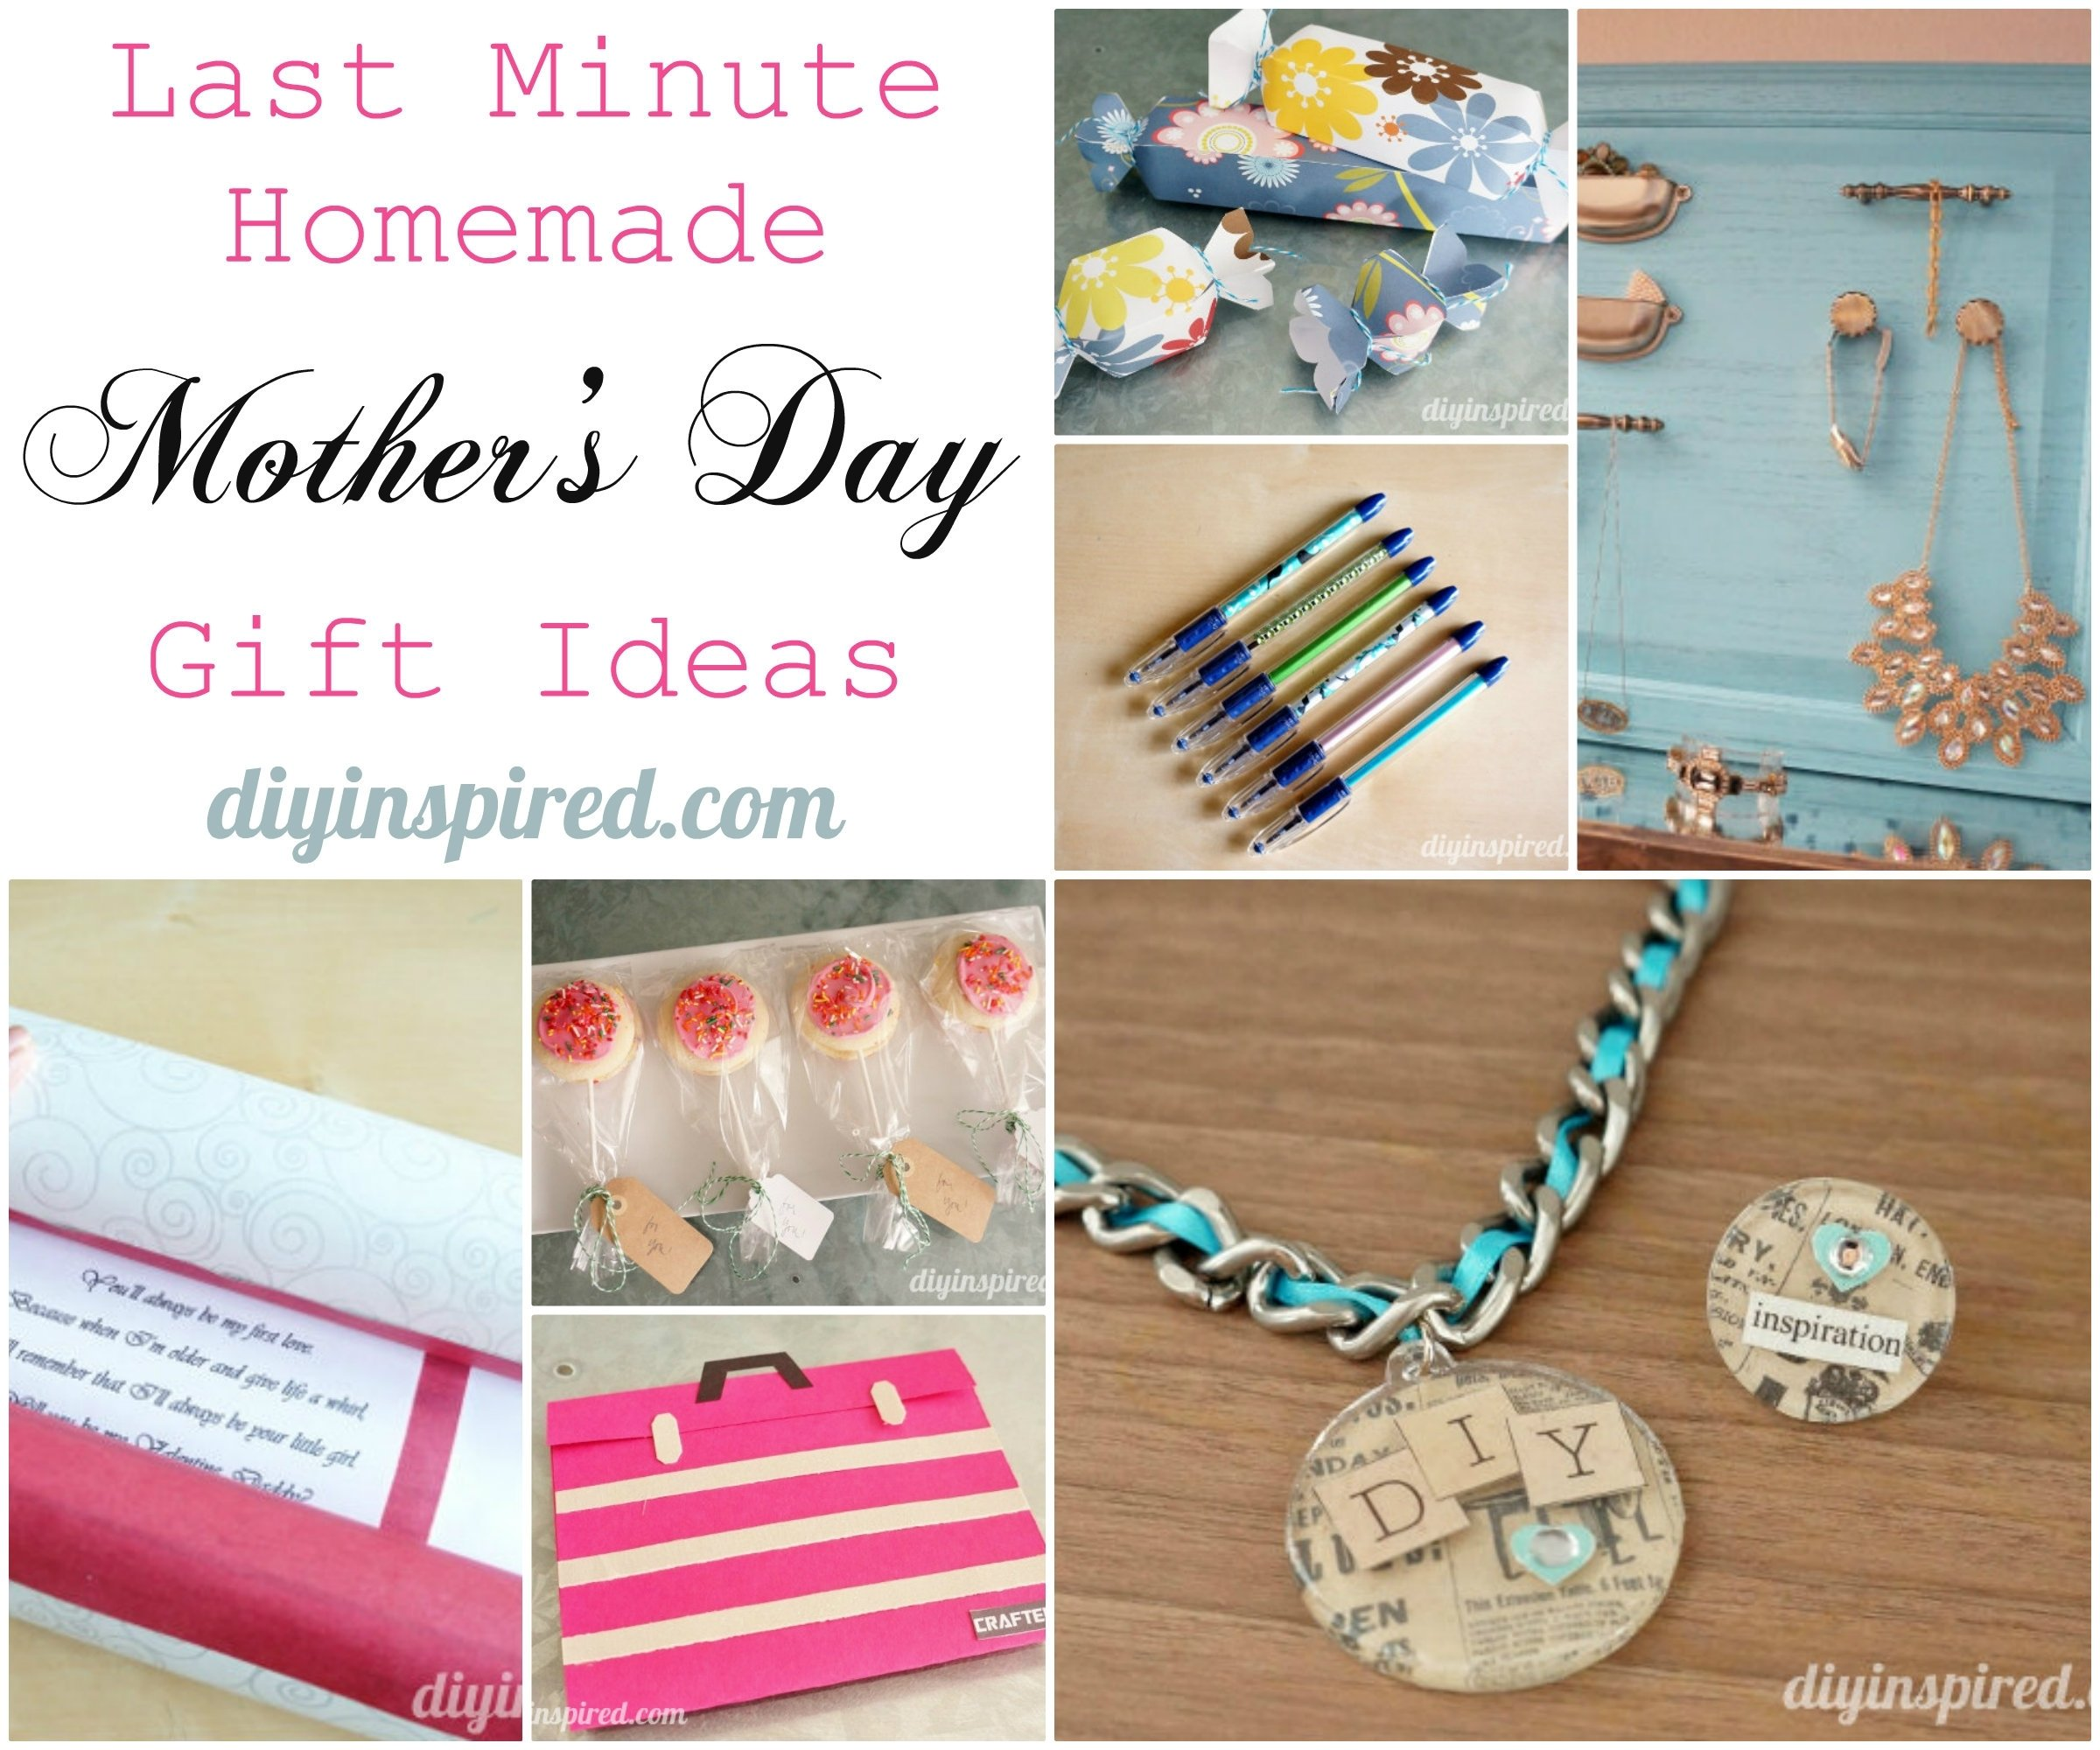 10 Cute Last Minute Homemade Christmas Gift Ideas diy gift idea e2 80 94 crafthubs last minute homemade mothers day 2020